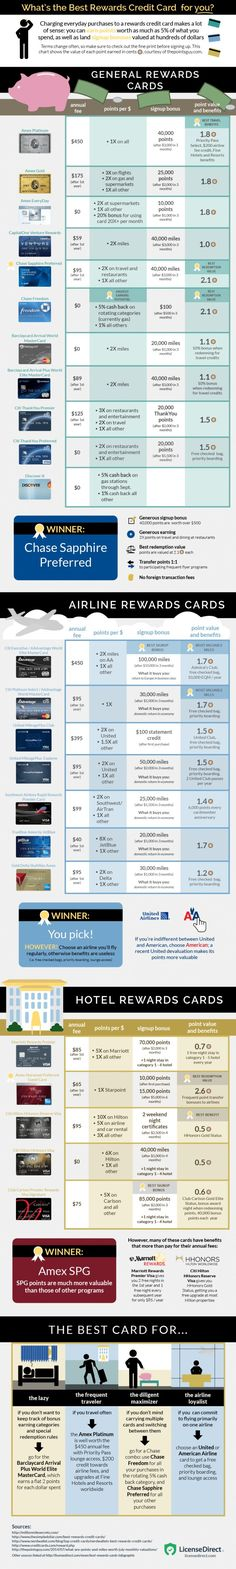 This Graphic Compares 25 of the Most Popular Rewards Credit Cards - Credit Card - Check out how to calculate your credit card payment. creditcard - from lifehacker: This Graphic Compares 25 of the Most Popular Rewards Credit Cards Paying Off Credit Cards, Rewards Credit Cards, Best Credit Cards, Credit Score, Dave Ramsey, Credit Card Pictures, Picture Credit, Hotel Rewards, Credit Card Hacks